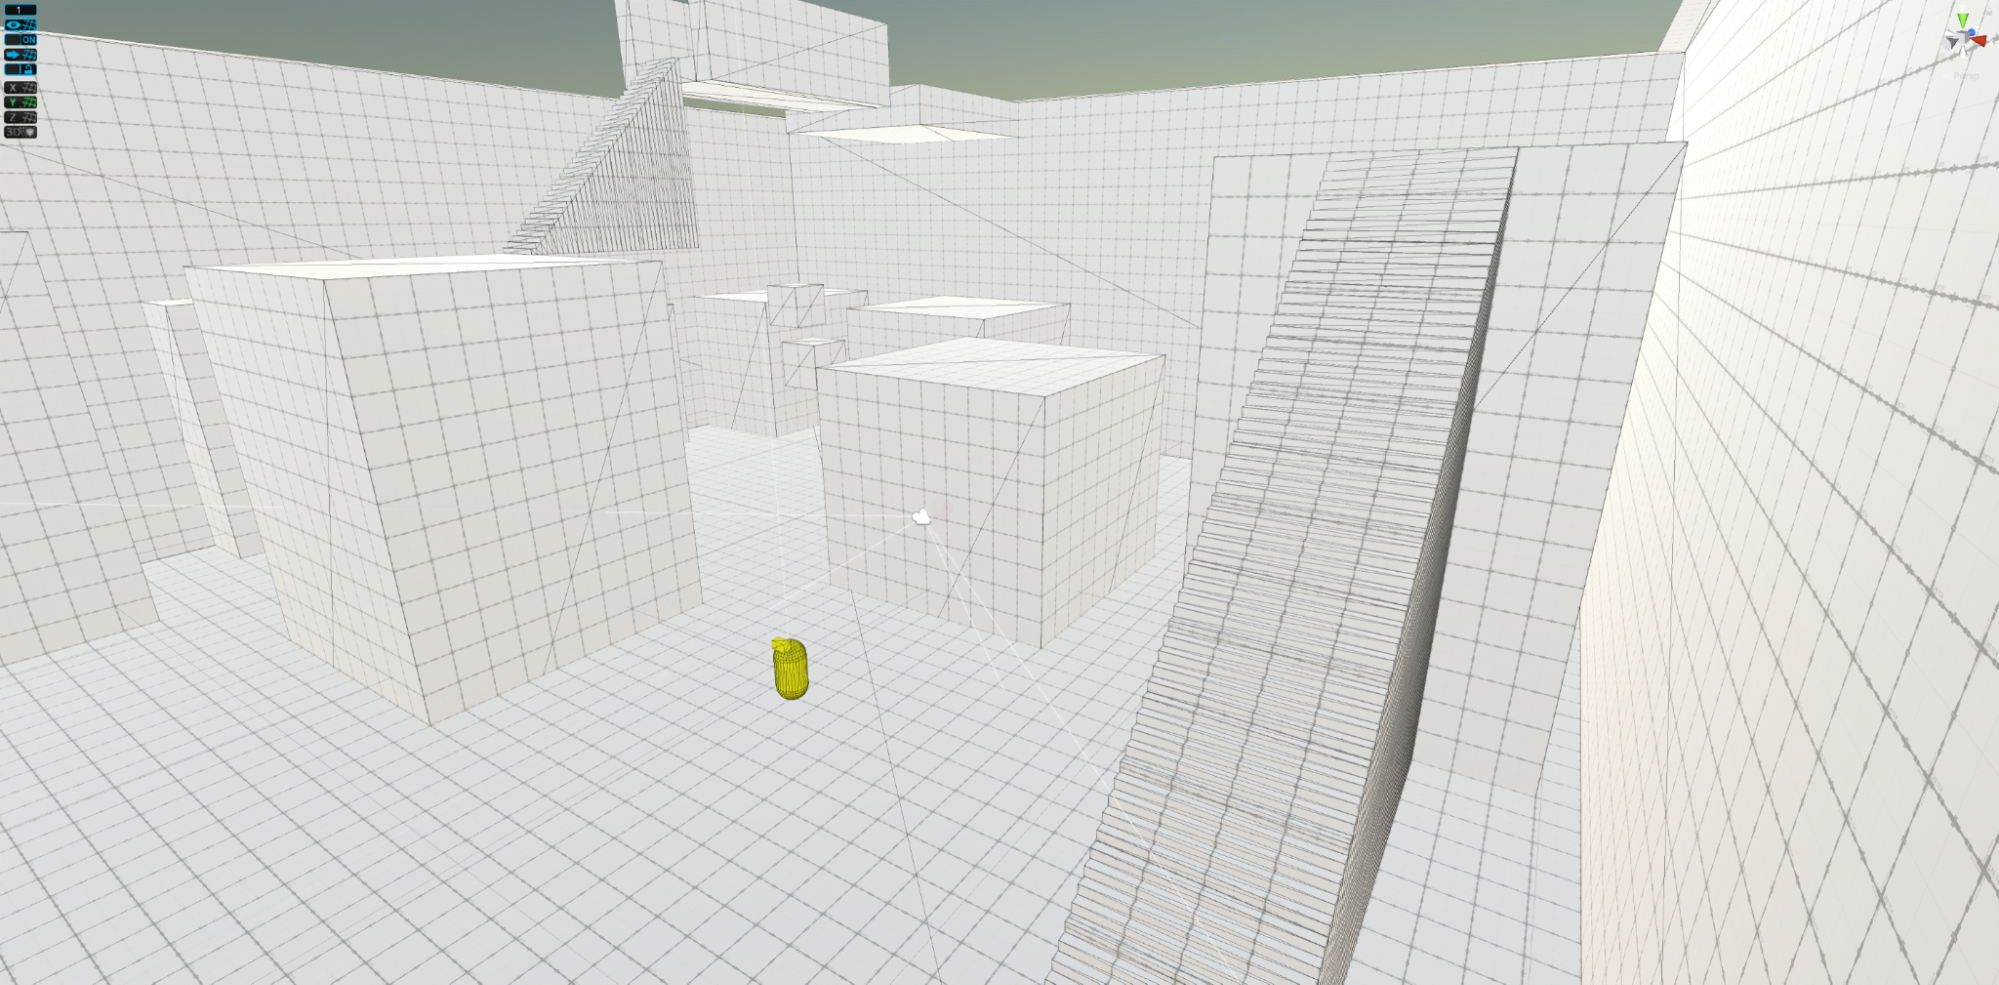 Building real-time games using Workers, Durable Objects, and Unity